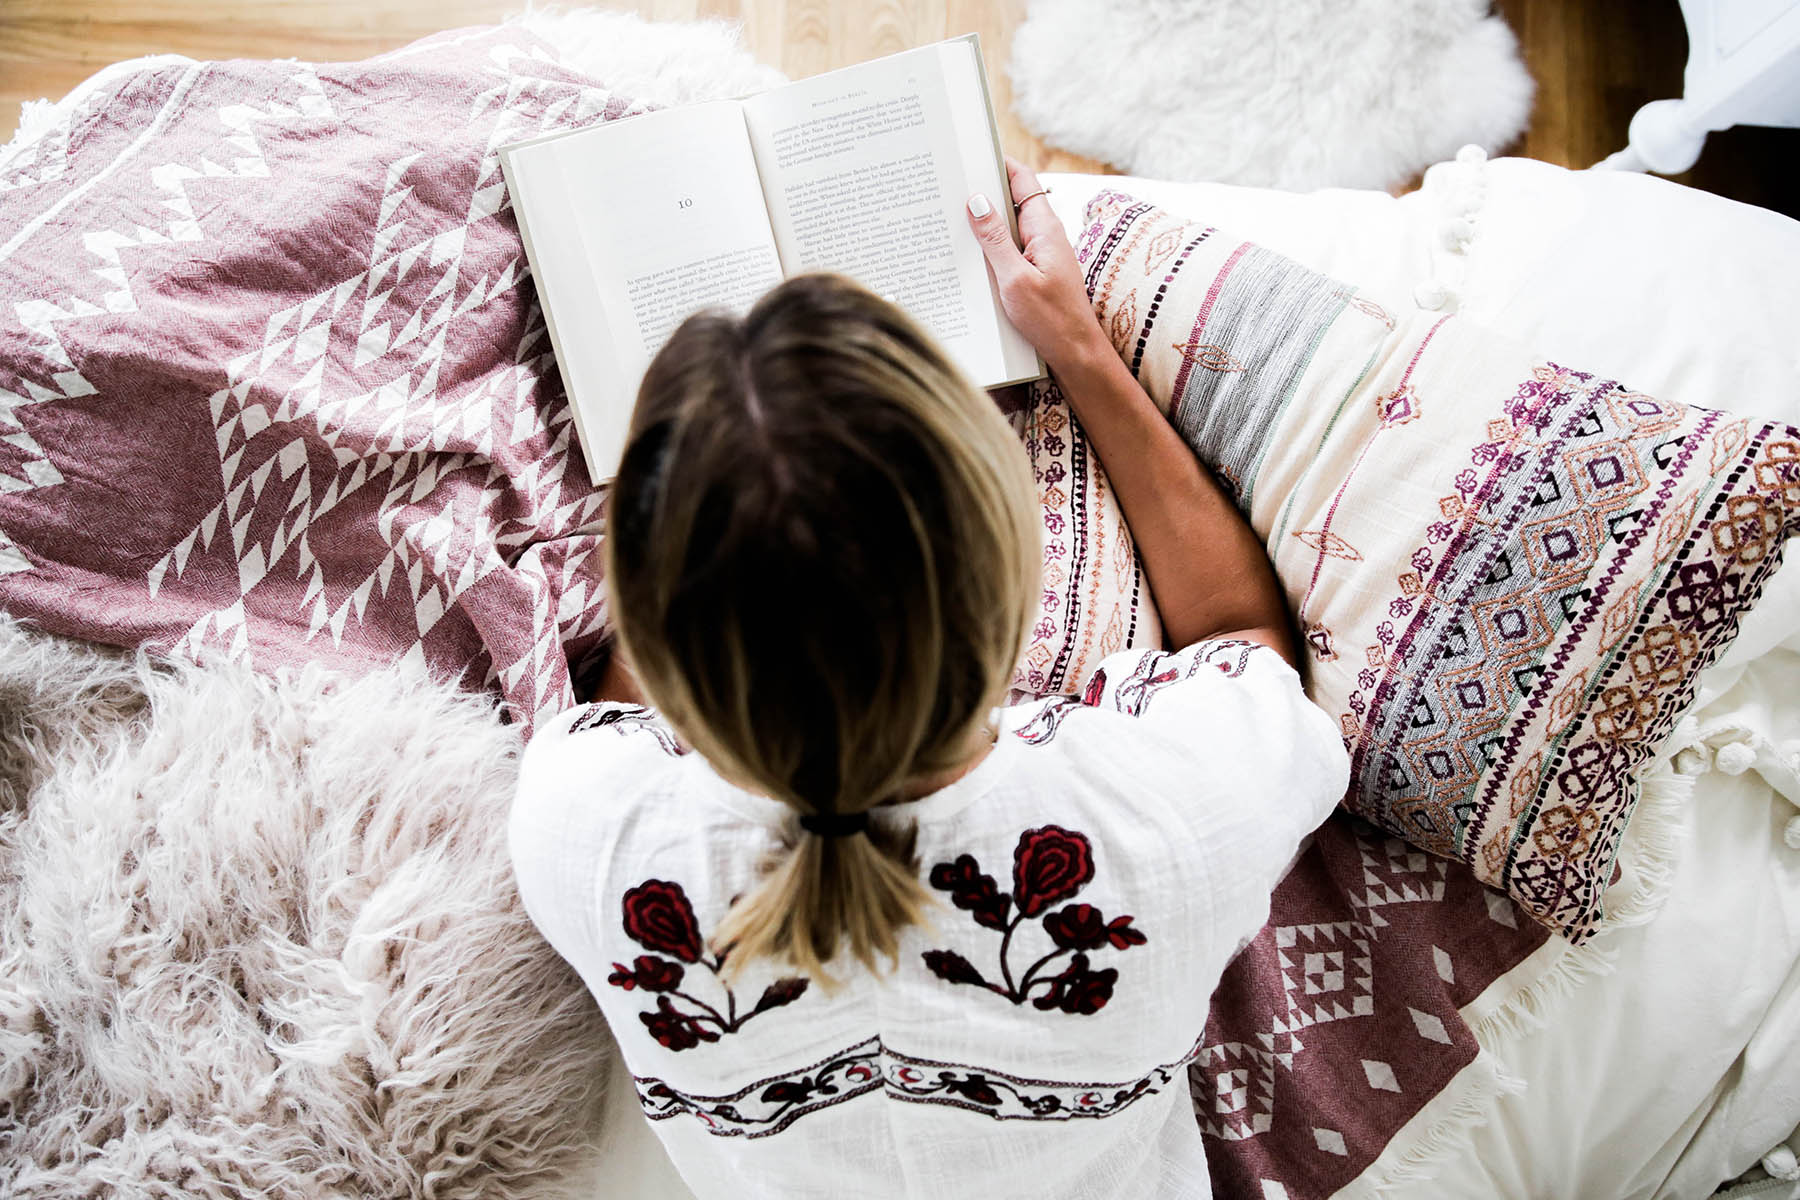 Amanda Holstein reading in bed with Urban Outfitters Urban Outfitters bedroom with Magical Thinking Pom-Fringe Duvet Cover and Agda Printed Yarn Pillow